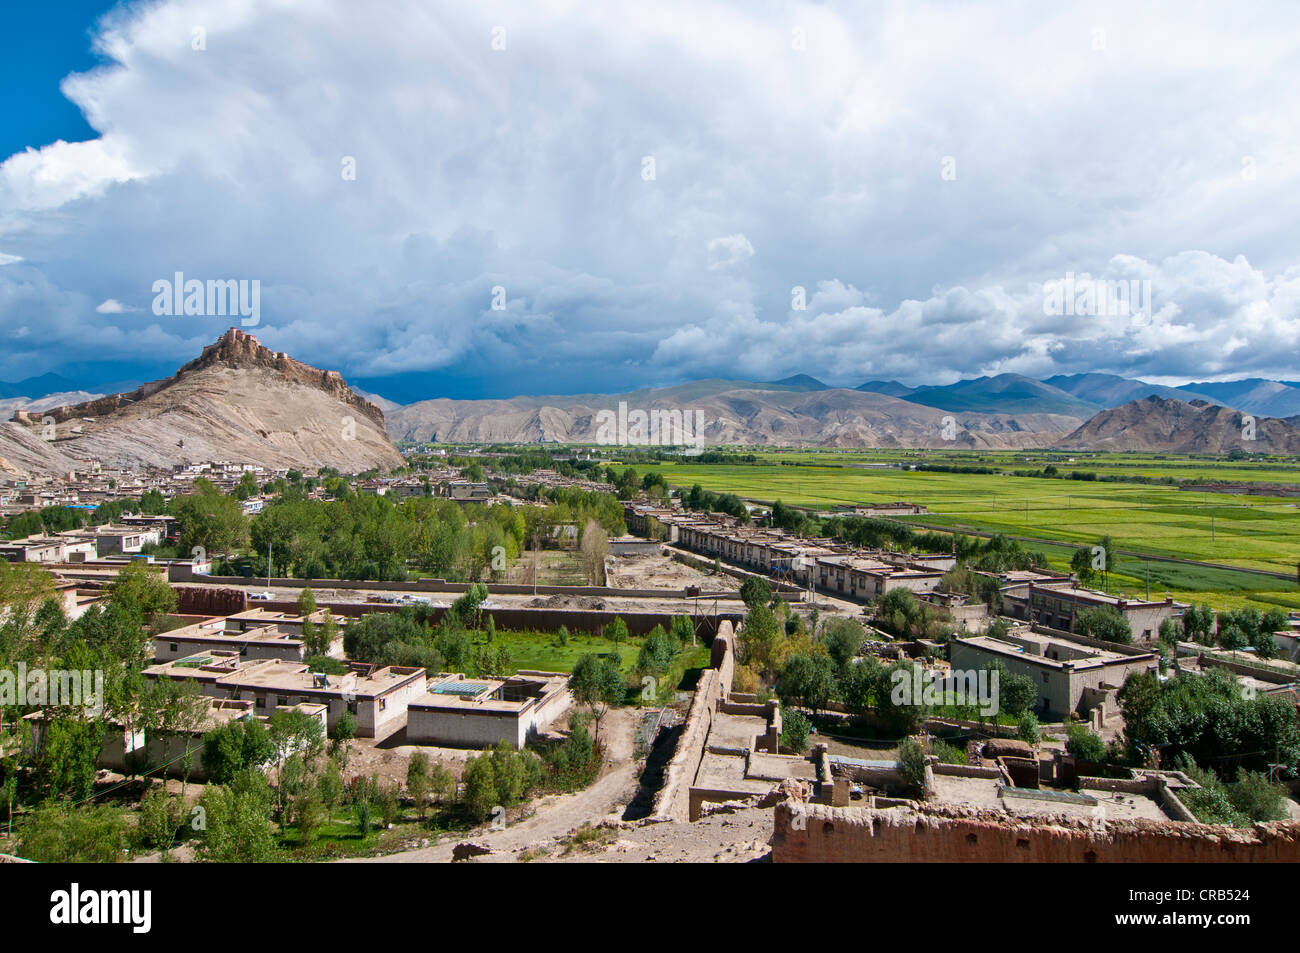 The old Tibetan quarter with the Gyantse Dzong or Gyantse Fortress at back, Gyantse, Tibet, Asia - Stock Image